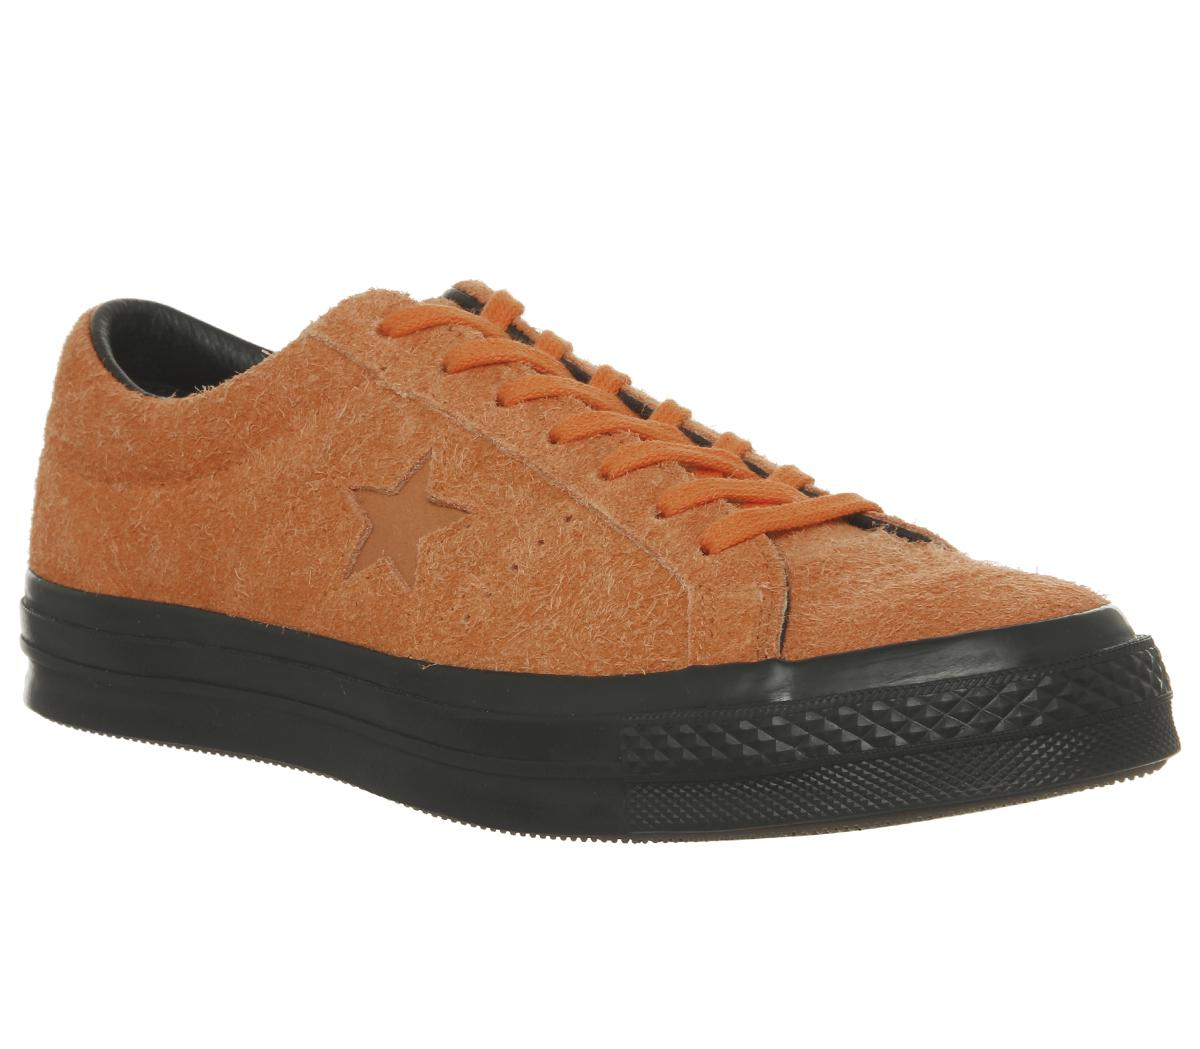 0098a9e8189 Converse One Star Trainers for Men - Lyst